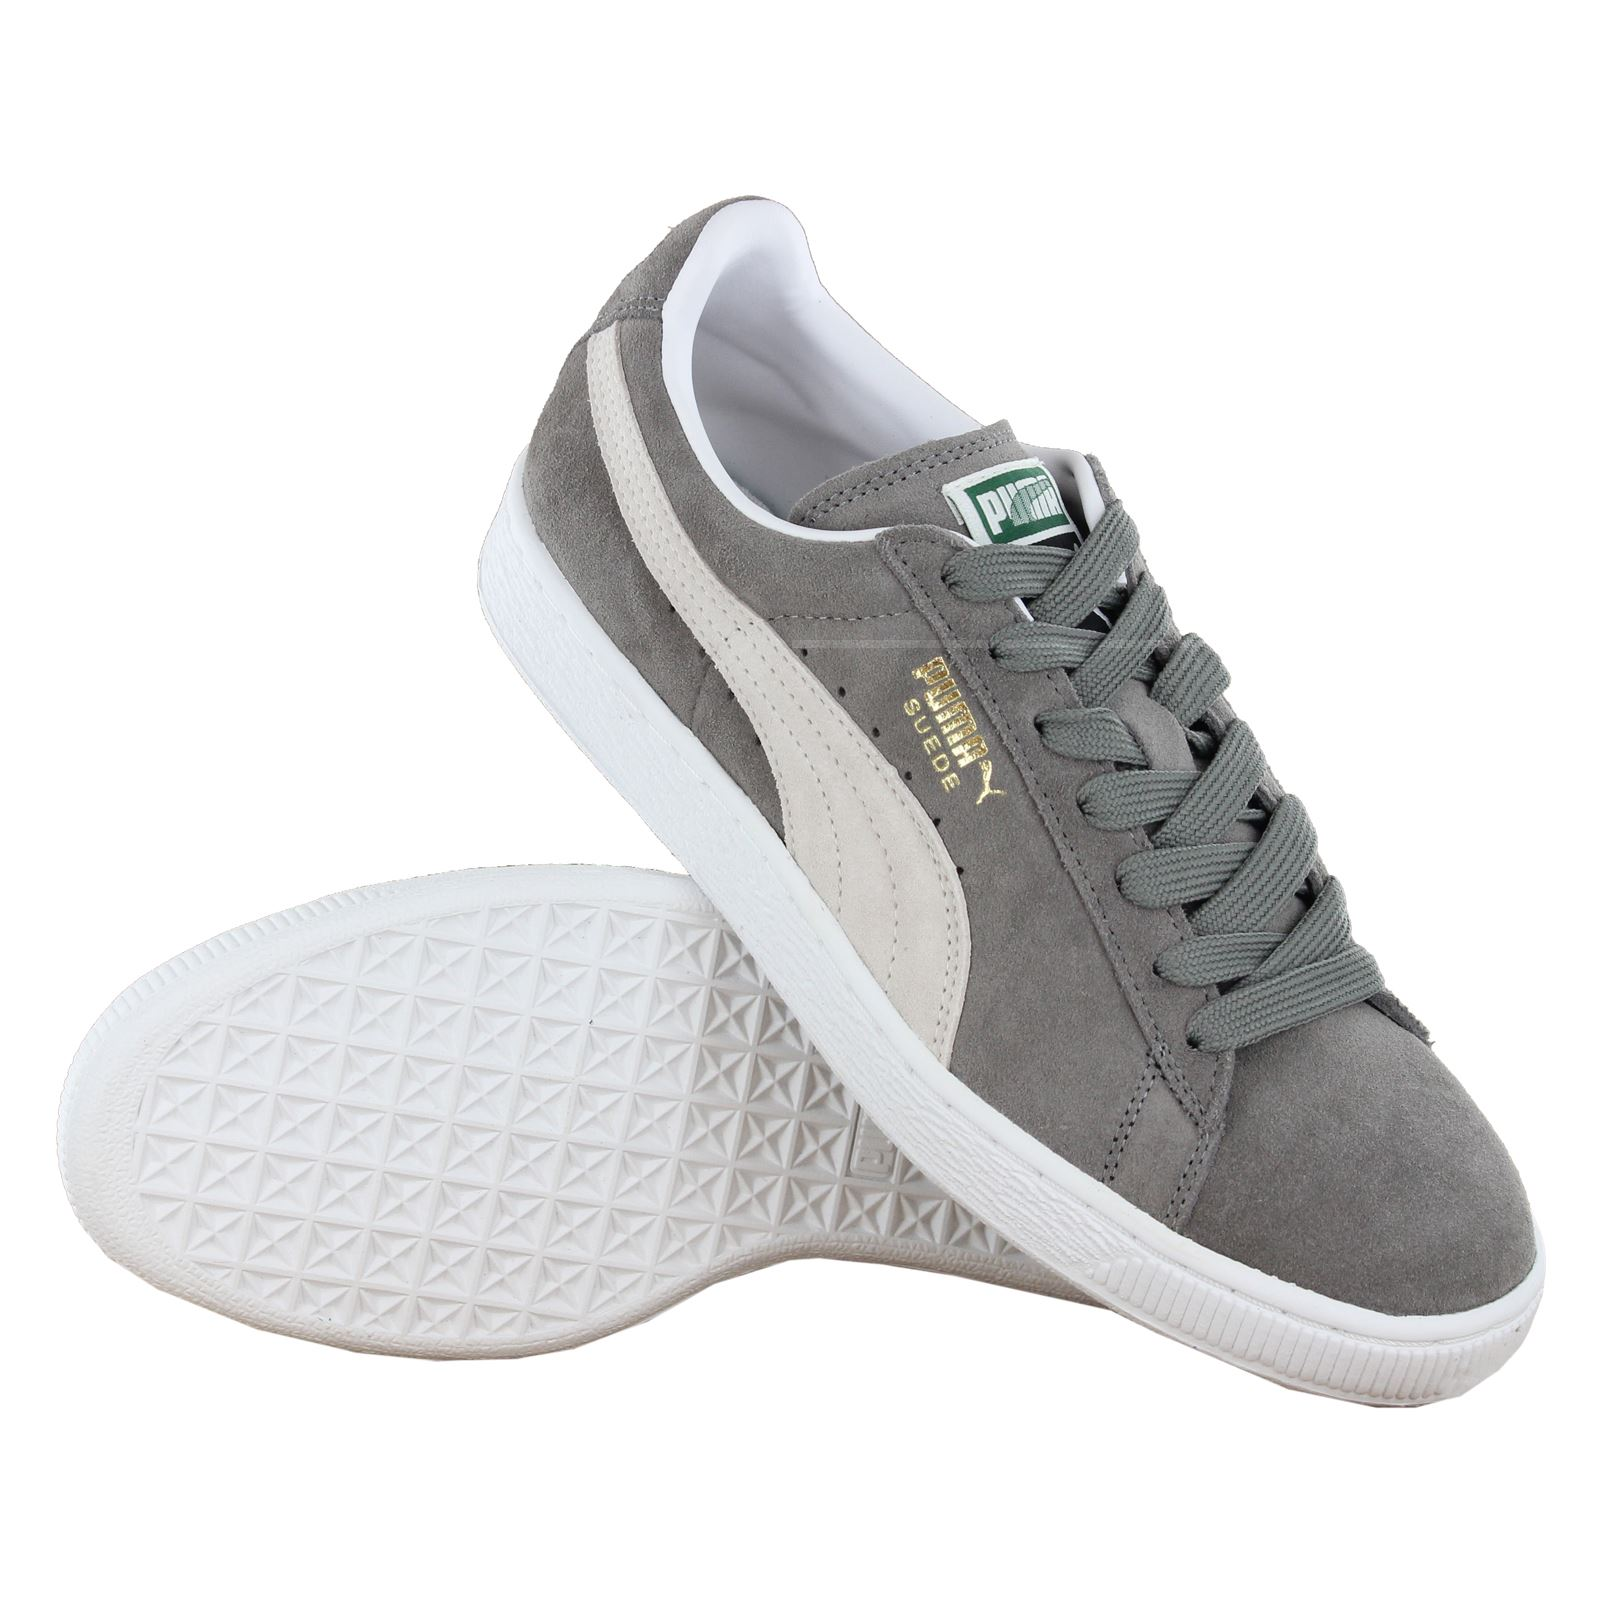 Puma-Classic-Suede-Women-Men-Unisex-Retro-Low-Top-Trainers